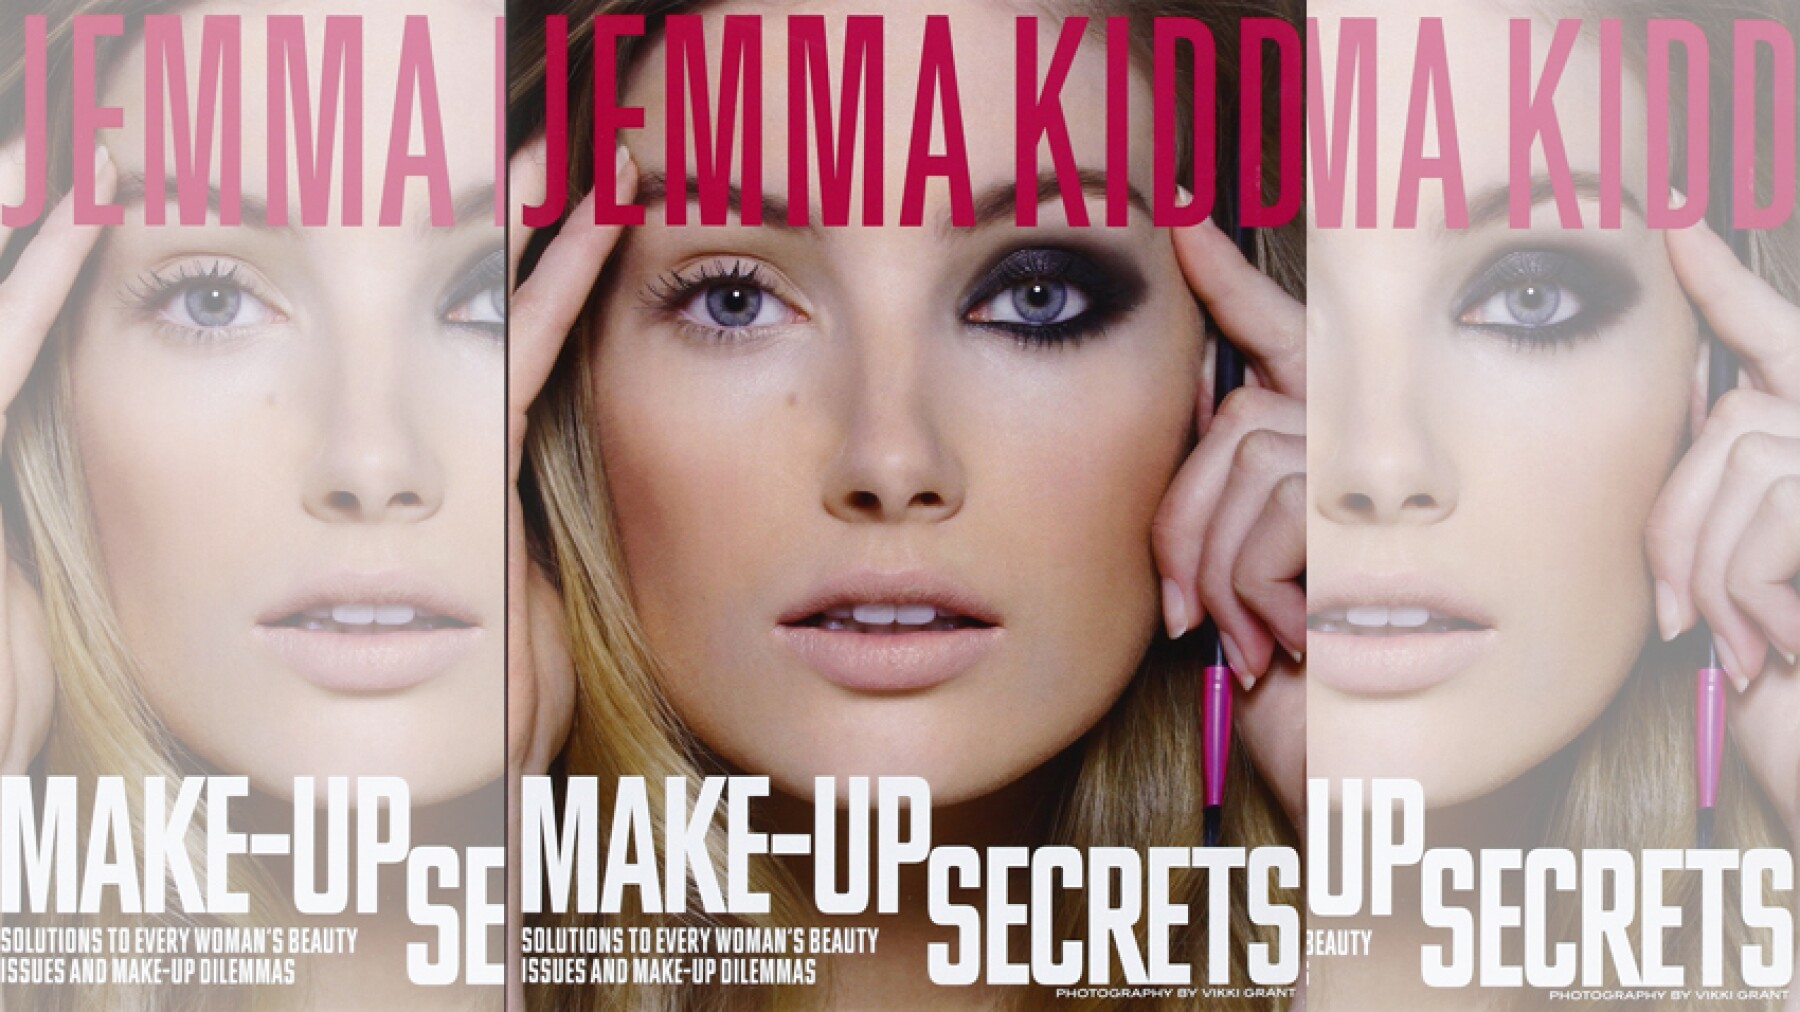 Make-Up Secrets: Solution to Every Woman's Beauty Issues and Make-Up Dilemas